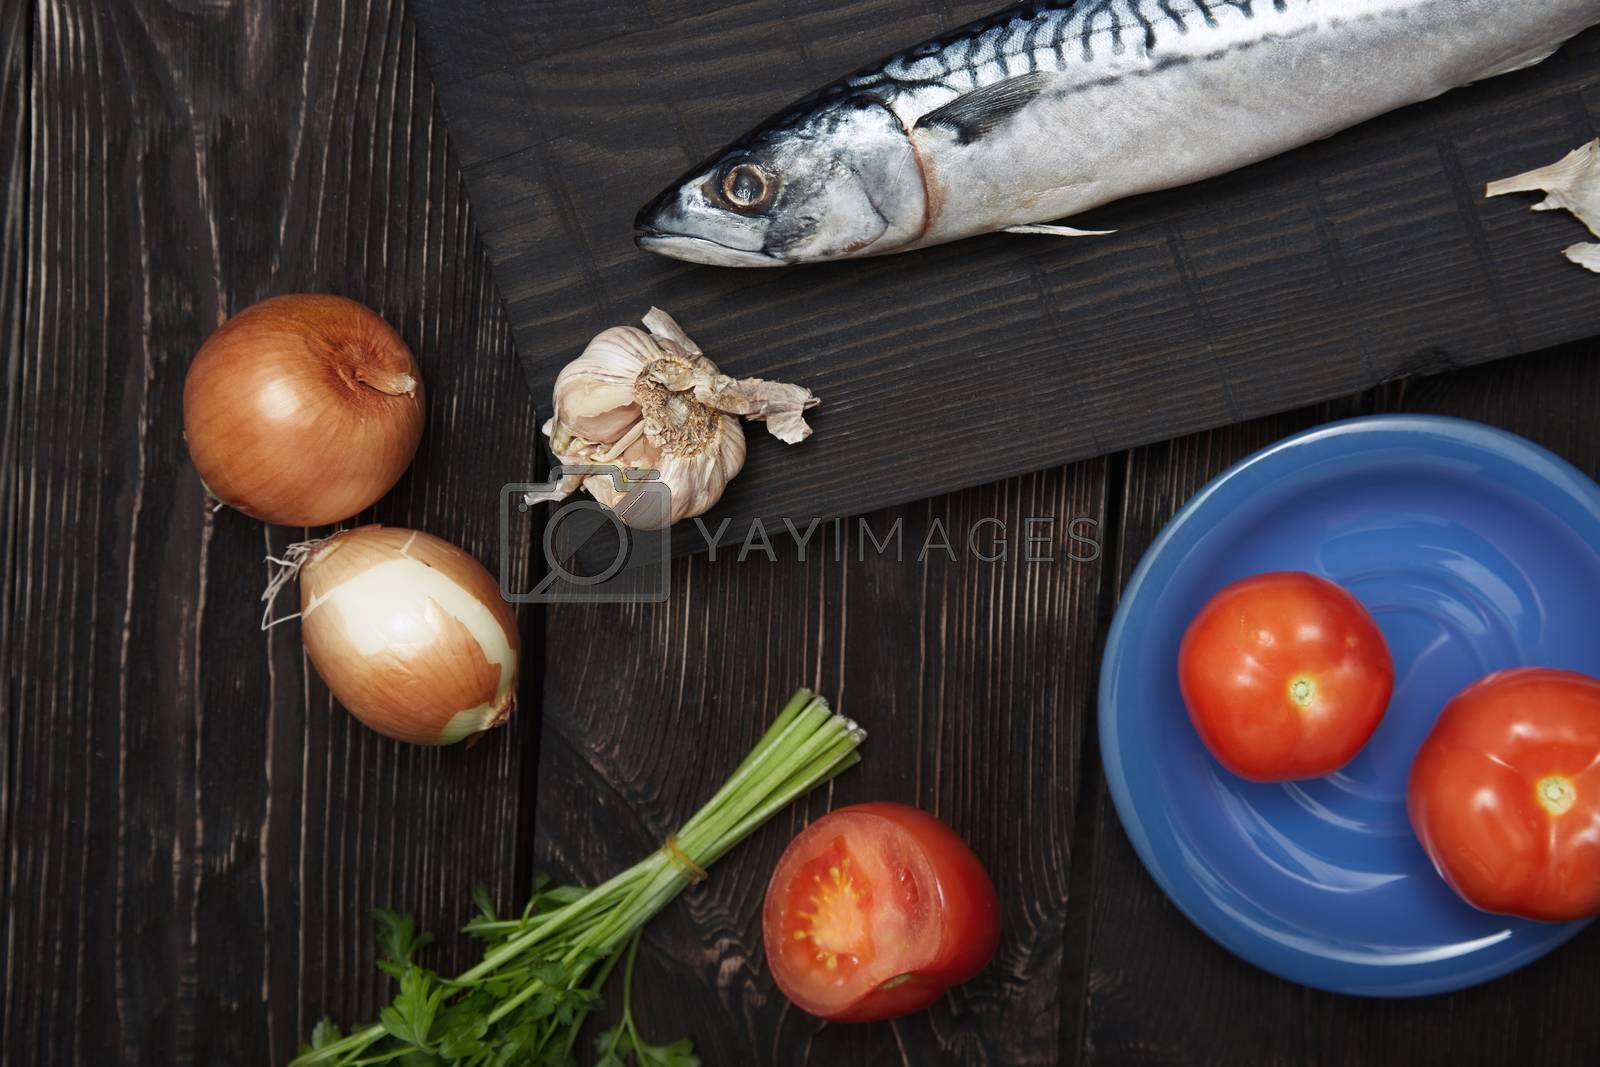 Mackerel and vegetables on a wooden table. Horizonal photo